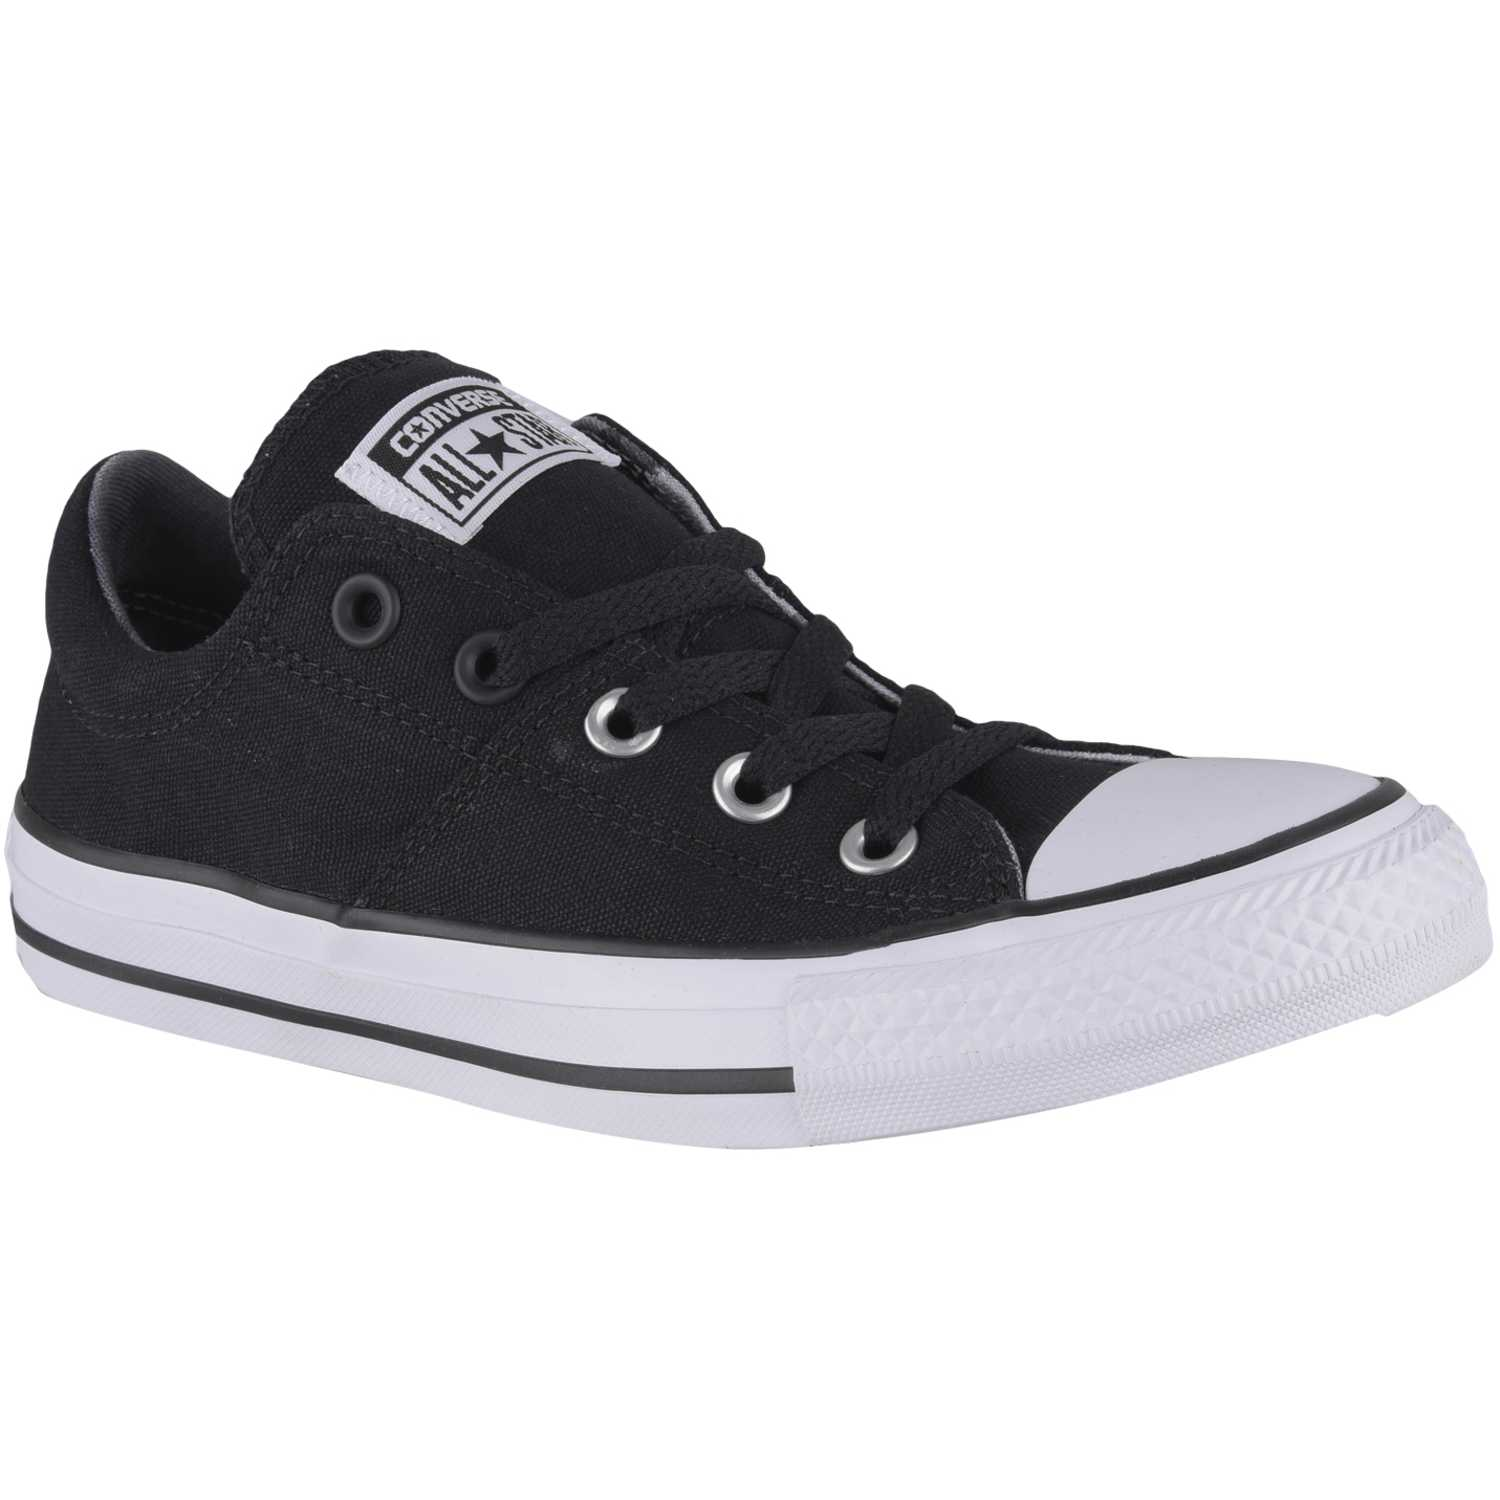 Converse ct as madison geo print Negro / blanco Walking